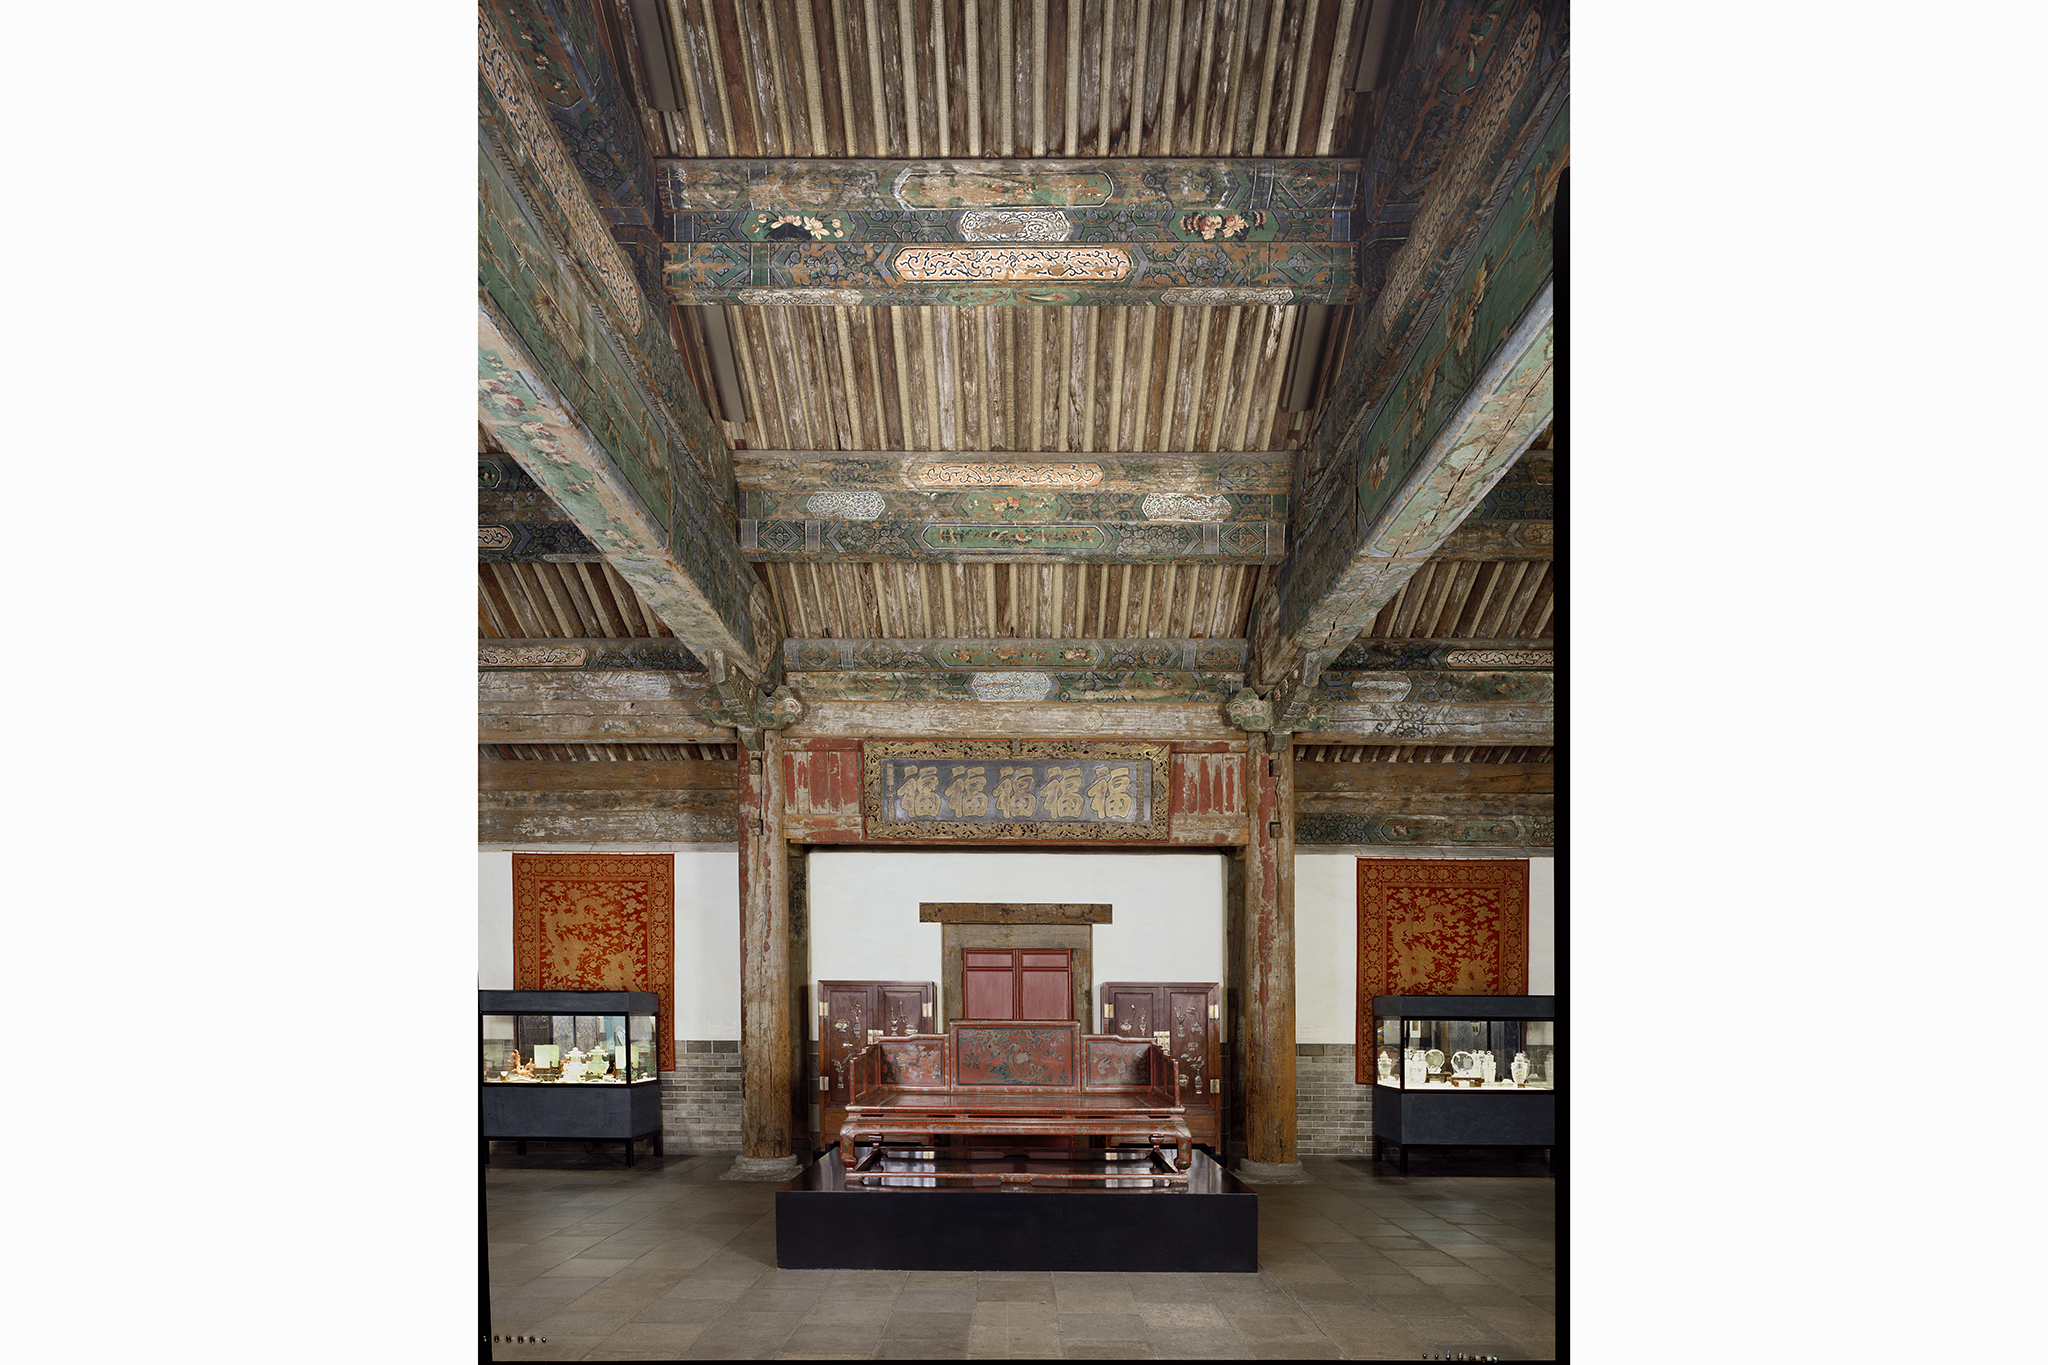 Reception Hall from the Palace of Duke Zhao, China, Beijing, Min